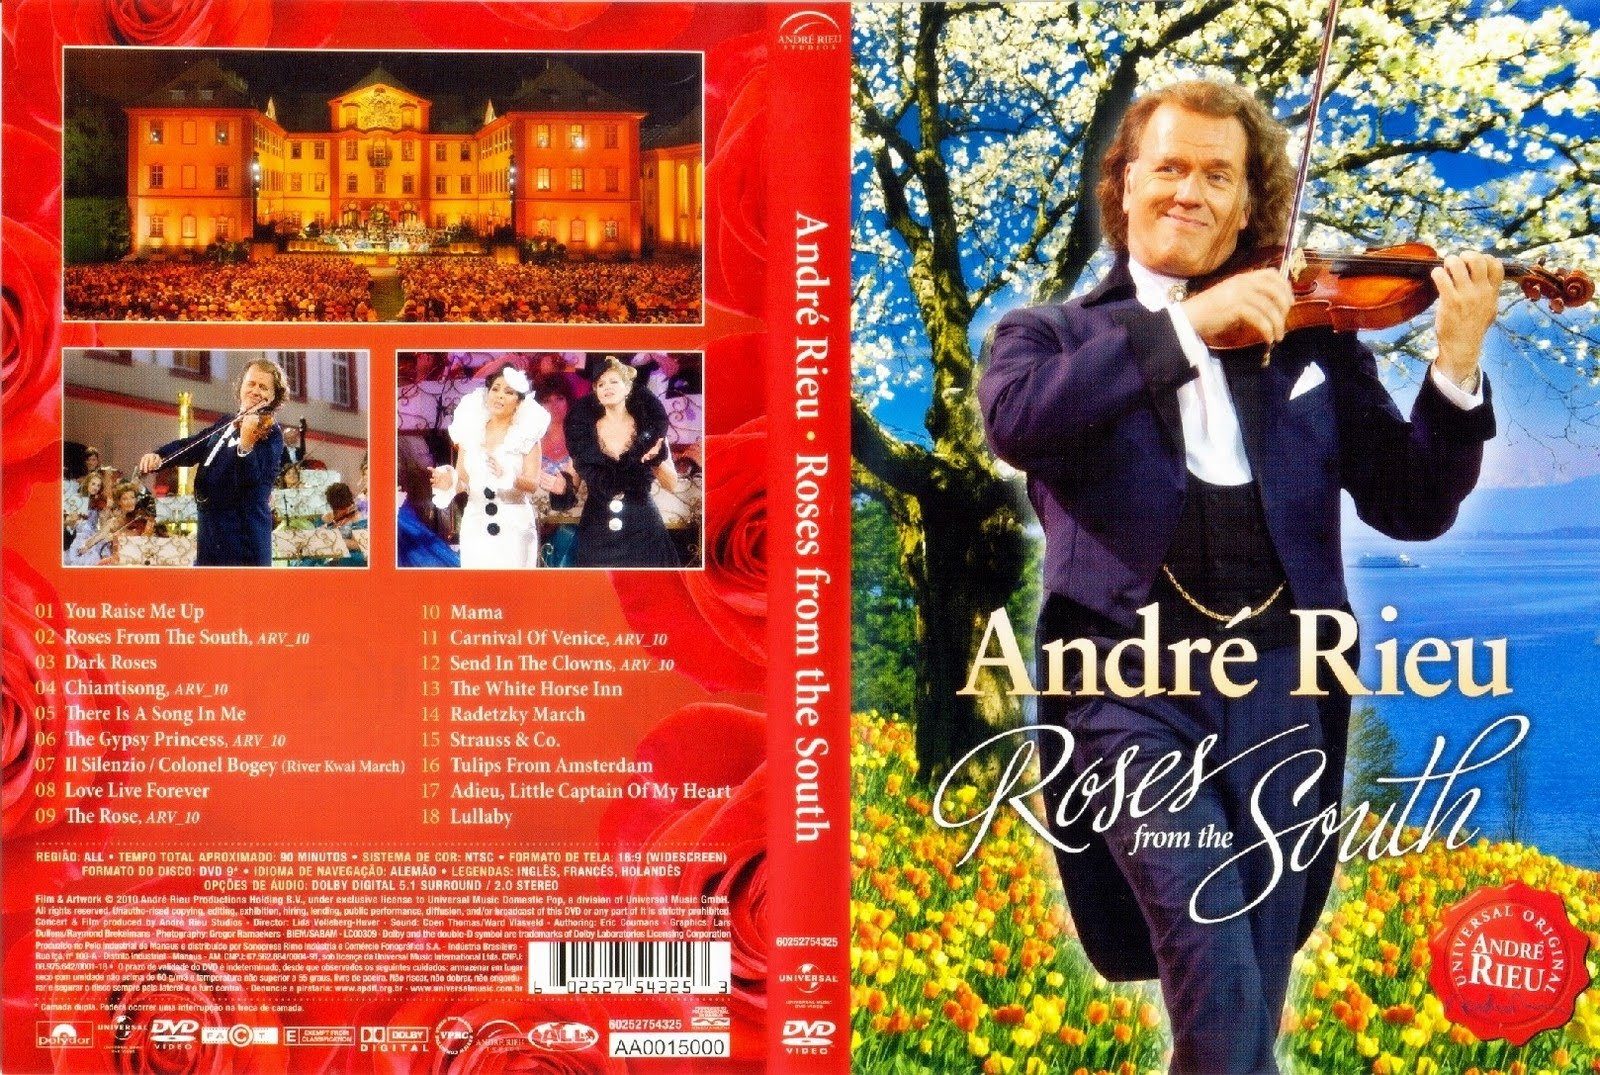 Hotel Carmen Roses Andre Rieu Roses From The South Dvd Fongumes